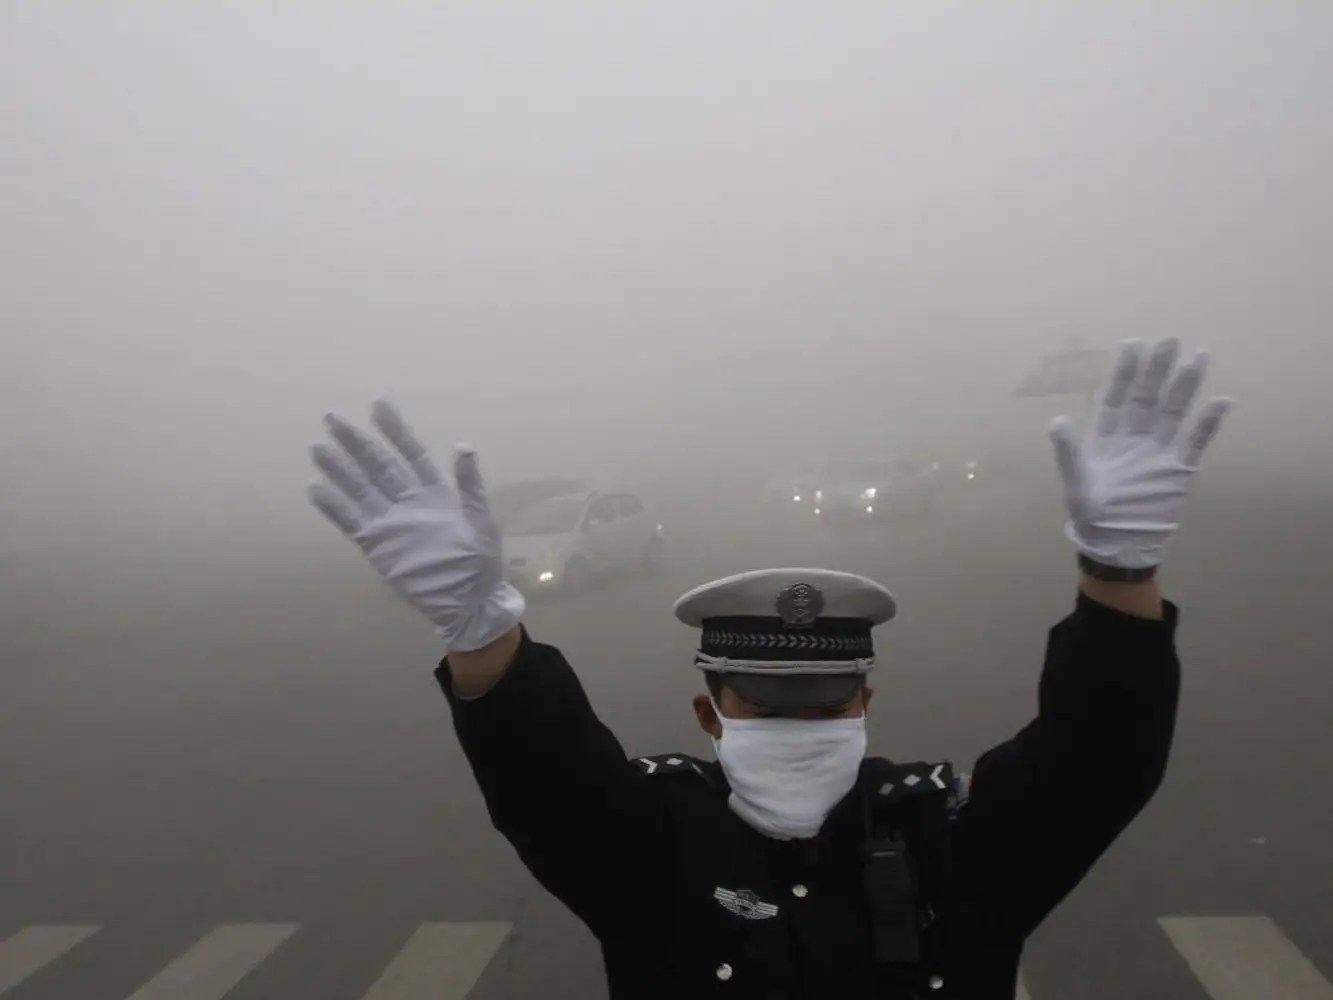 In 2014, China launched a war on pollution, vowing to cut down on hazardous emissions of PM 2.5. It's hard to do that amid a growing economy, but so far, Beijing has been able to shut down coal plants within city limits, and has tried to curb car emissions by limiting the number of license plates.